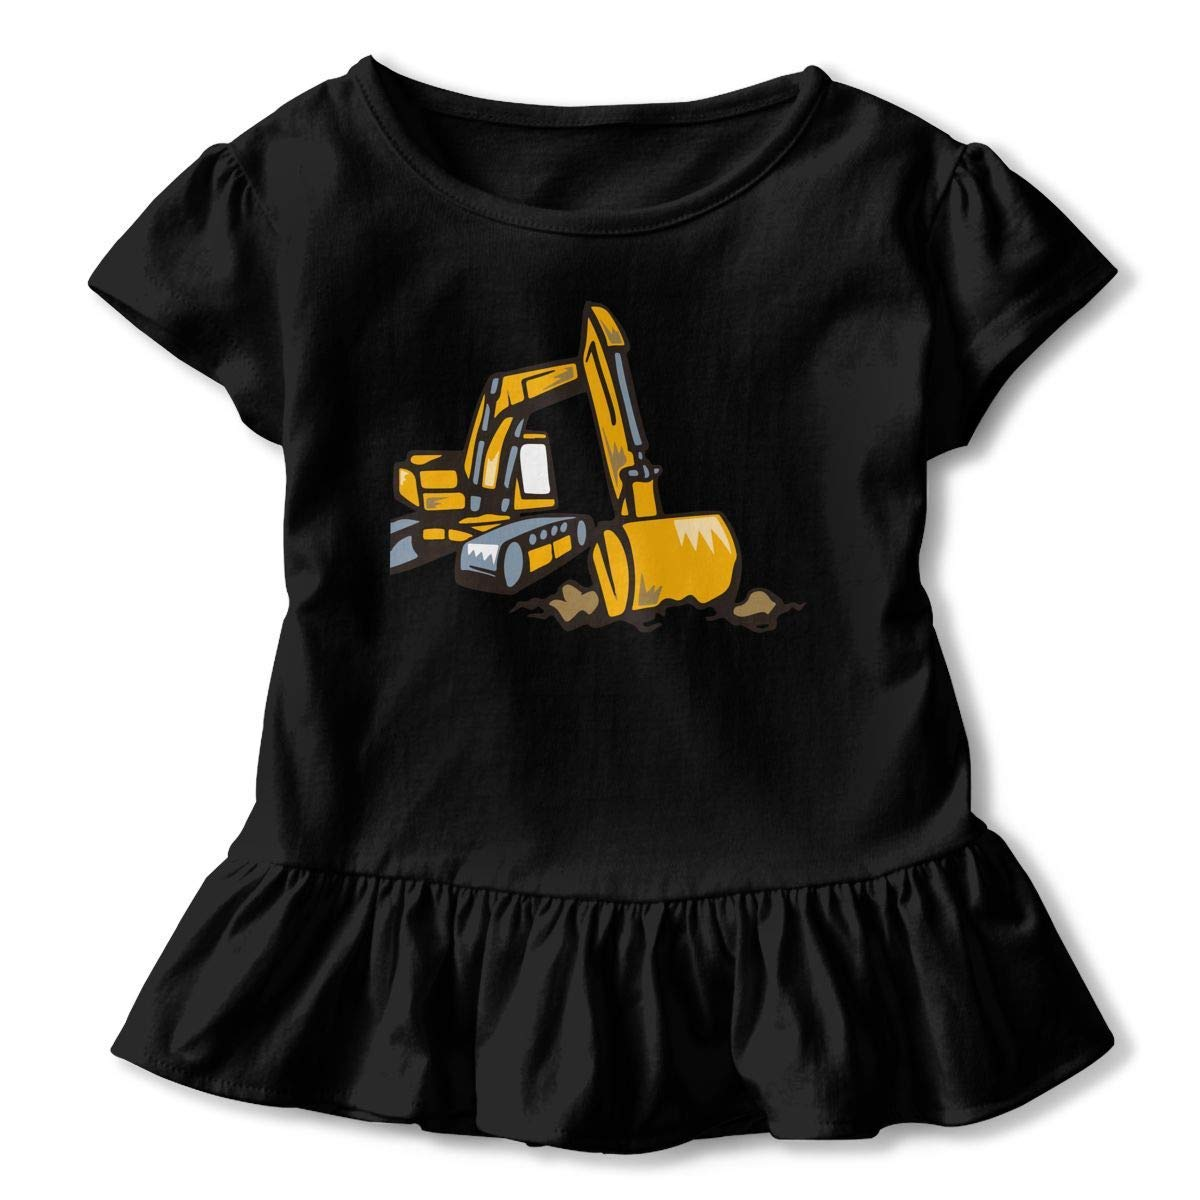 PMsunglasses Short Sleeve Excavator T-Shirts for Kids Fashion Tunic Tops with Falbala 2-6T